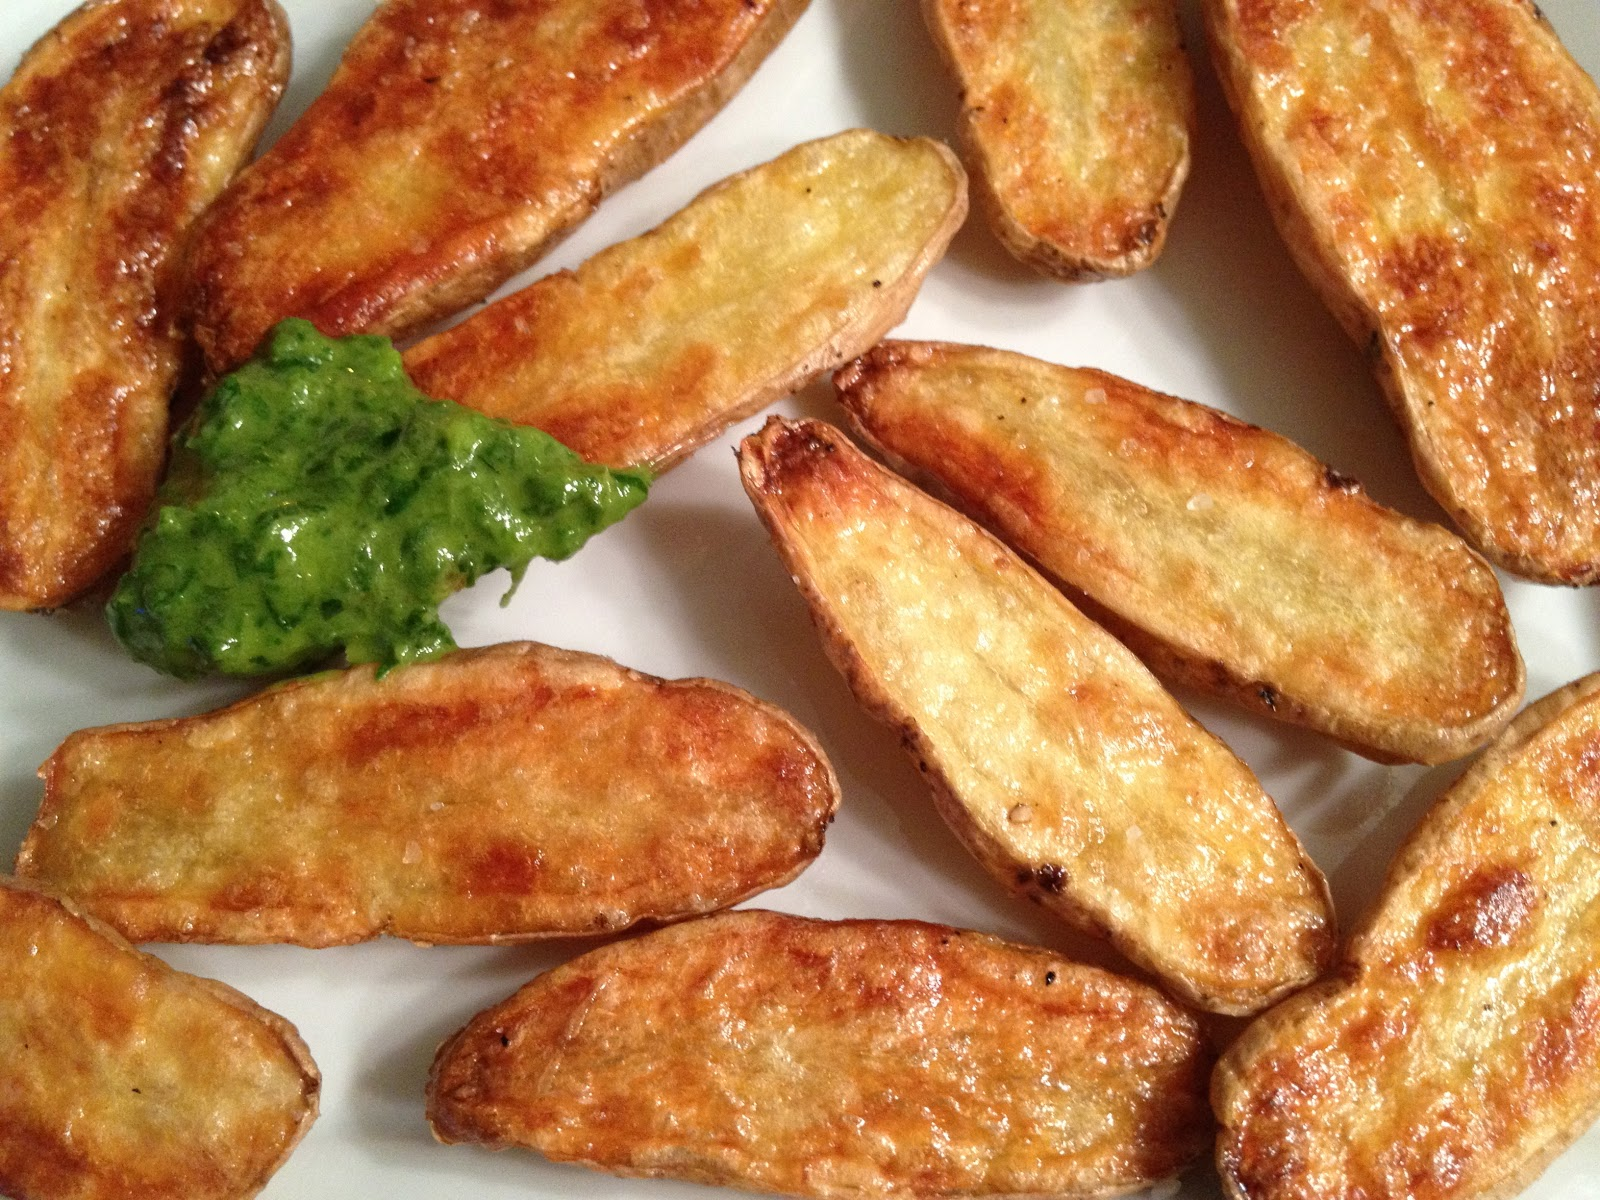 Roasted Fingerling Potatoes With Chive Dipping Sauce Lisa 39 S Project Vegan